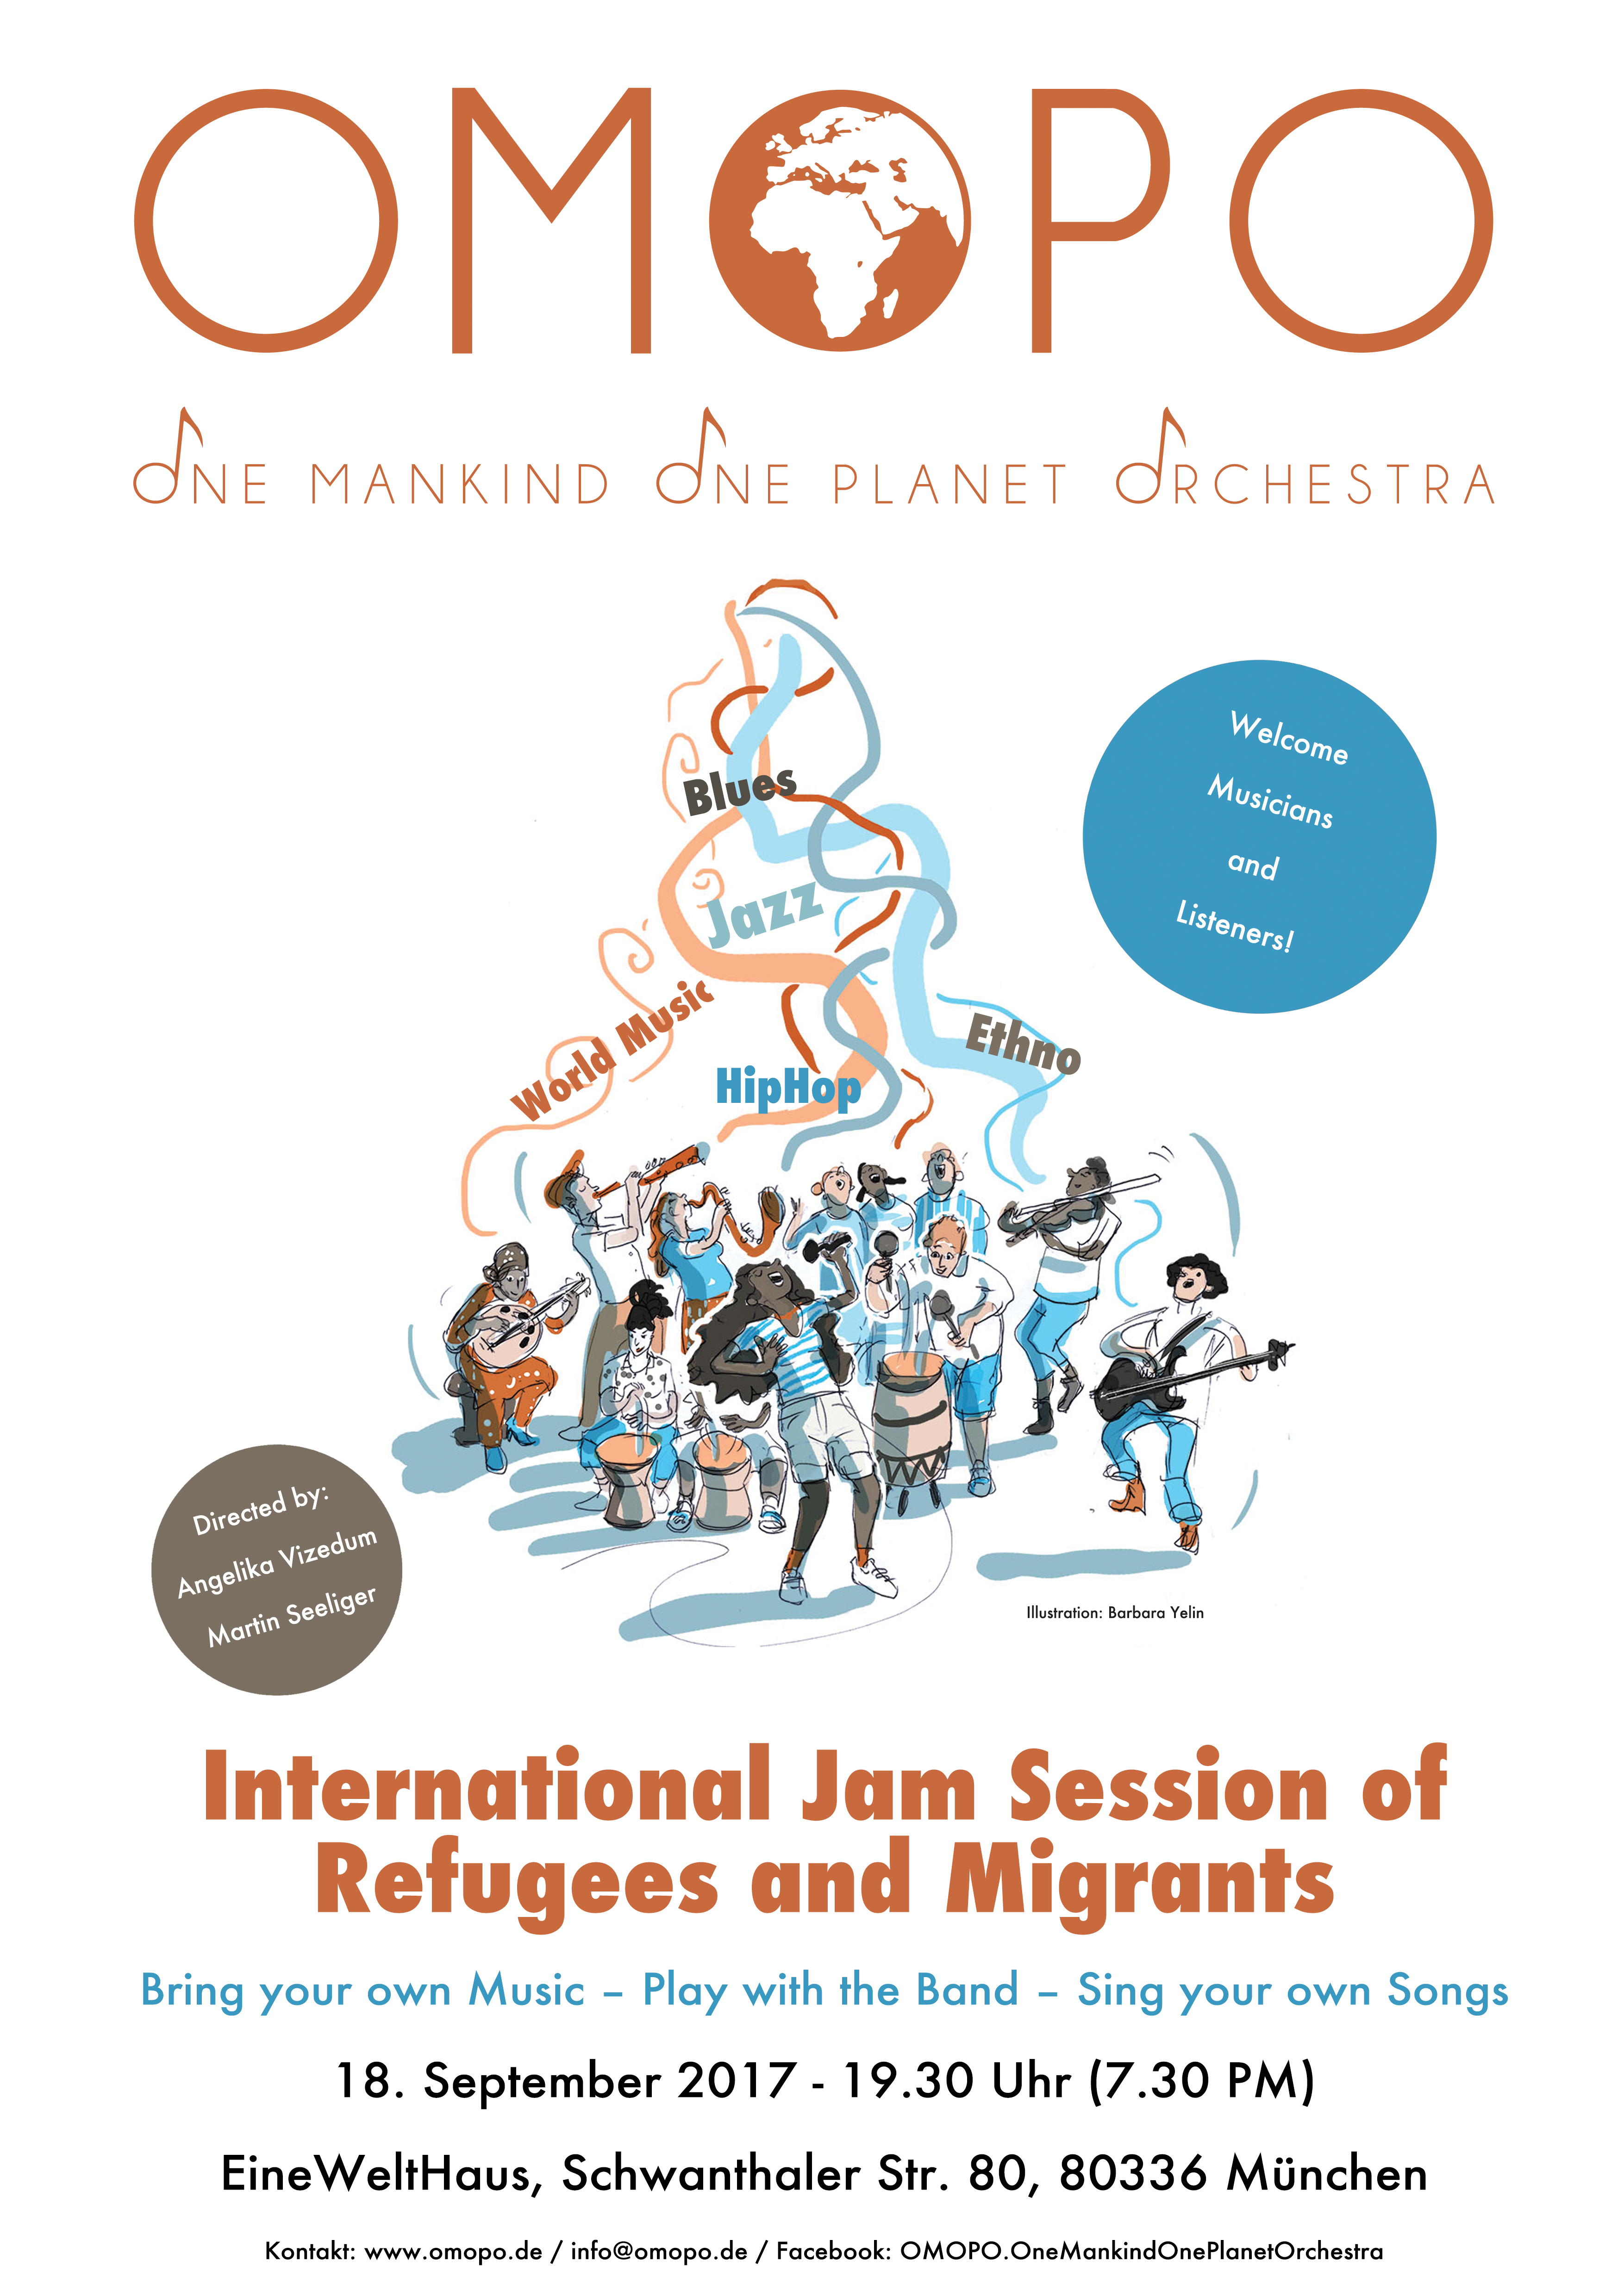 International Jam Session of Refugees and Migrants